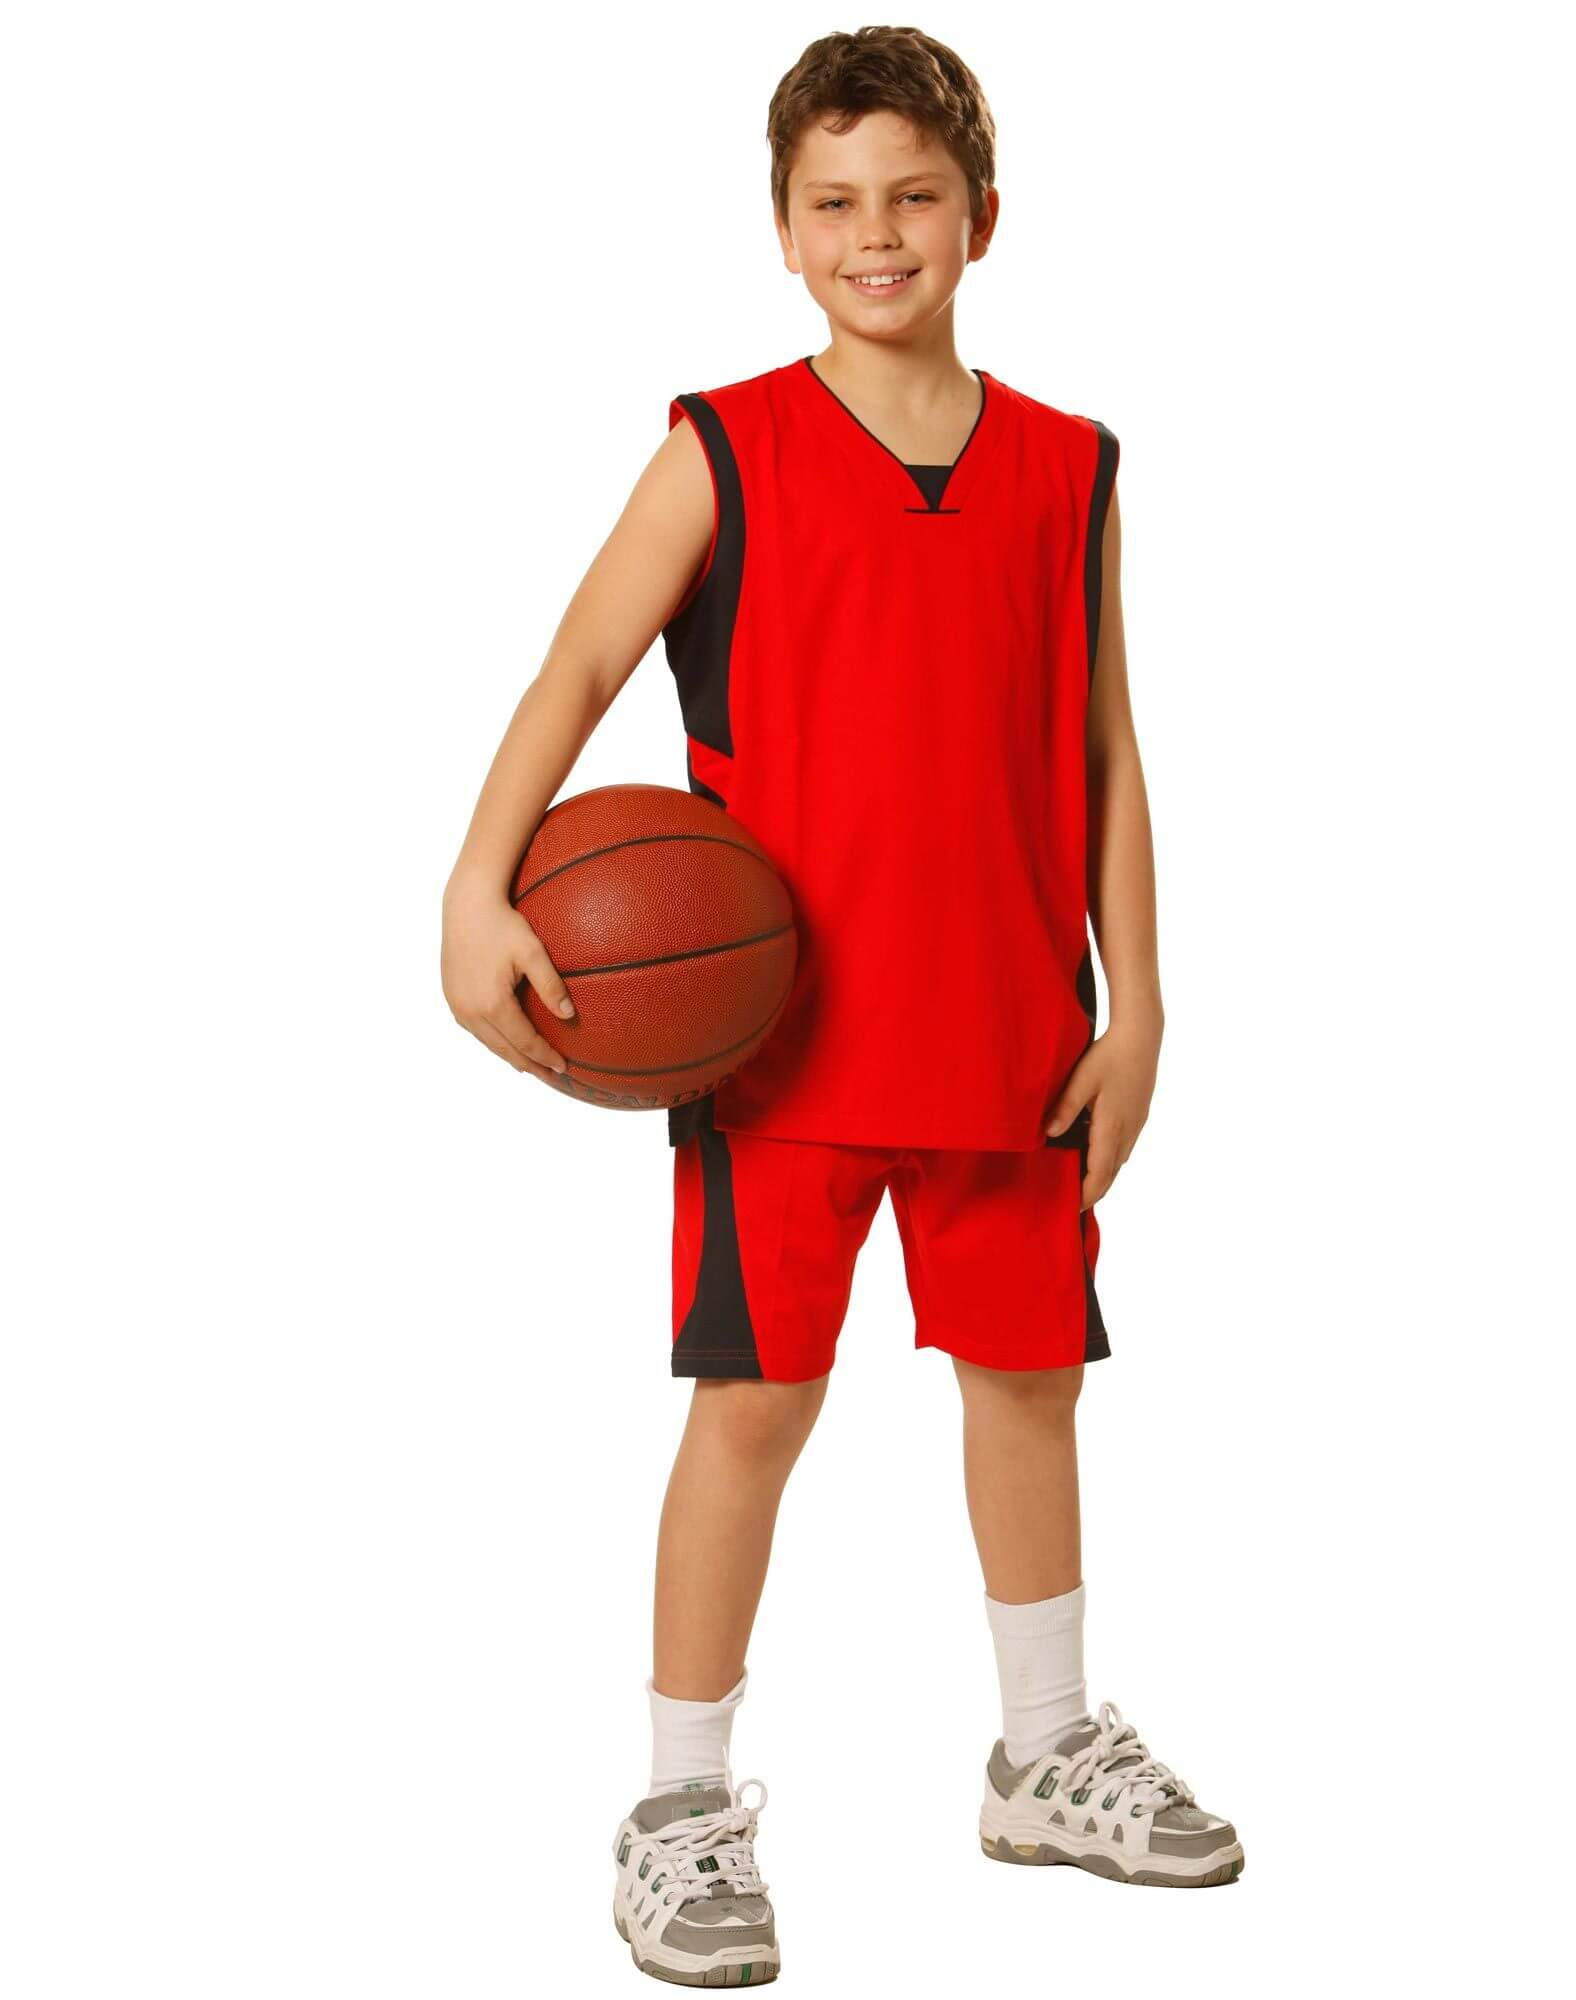 Kids Basketball Jerseys Manufacturers in Nashik